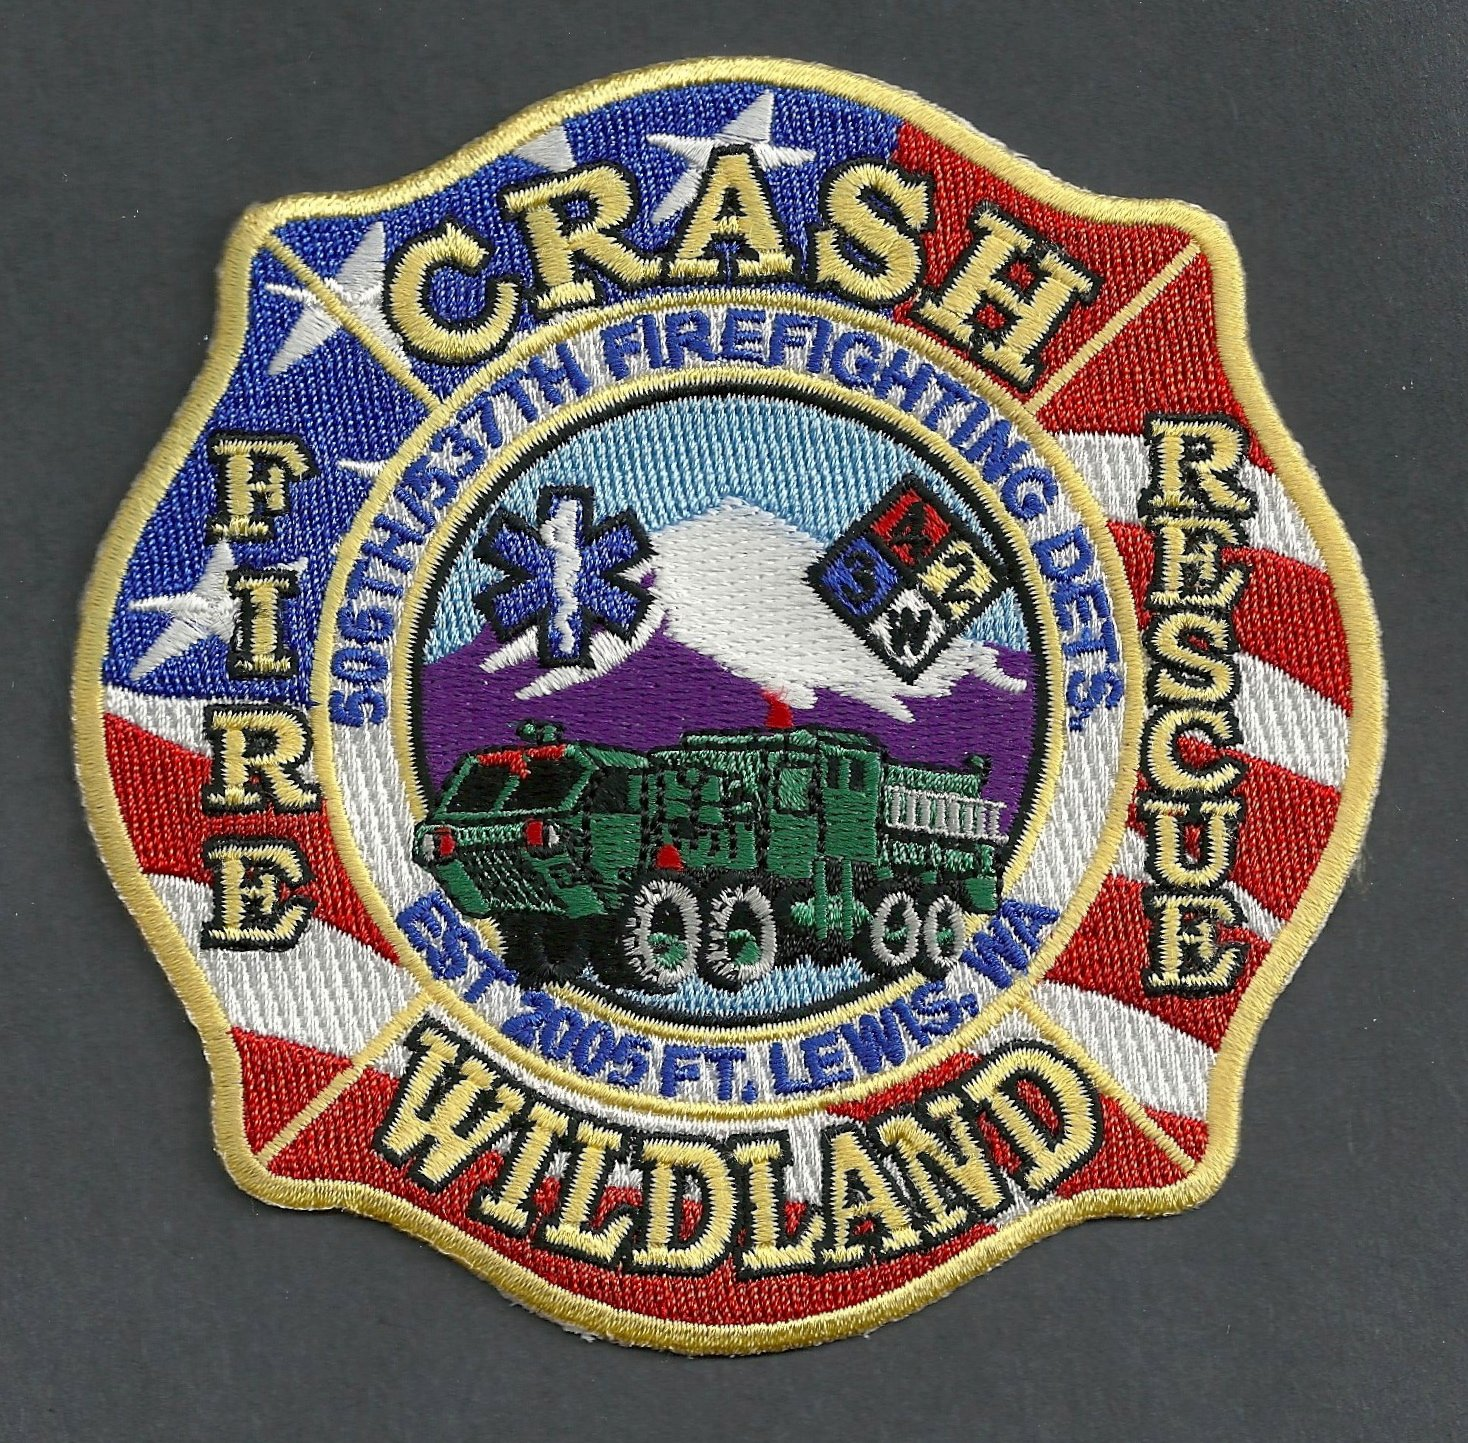 FORT LEWIS ARMY BASE WASHINGTON CRASH FIRE RESCUE PATCH